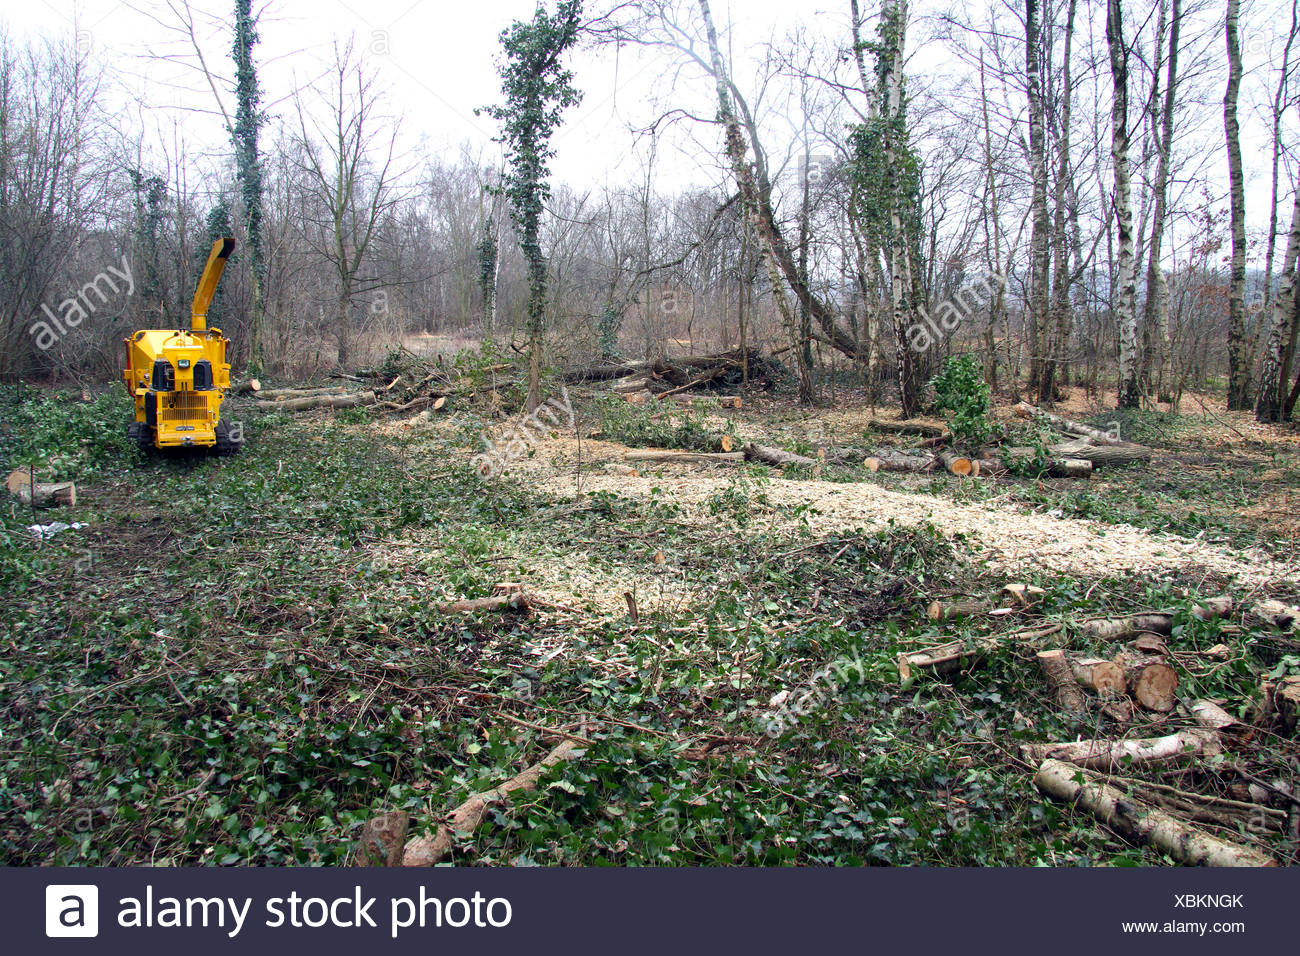 forest tending after storm losses, Germany - Stock Image